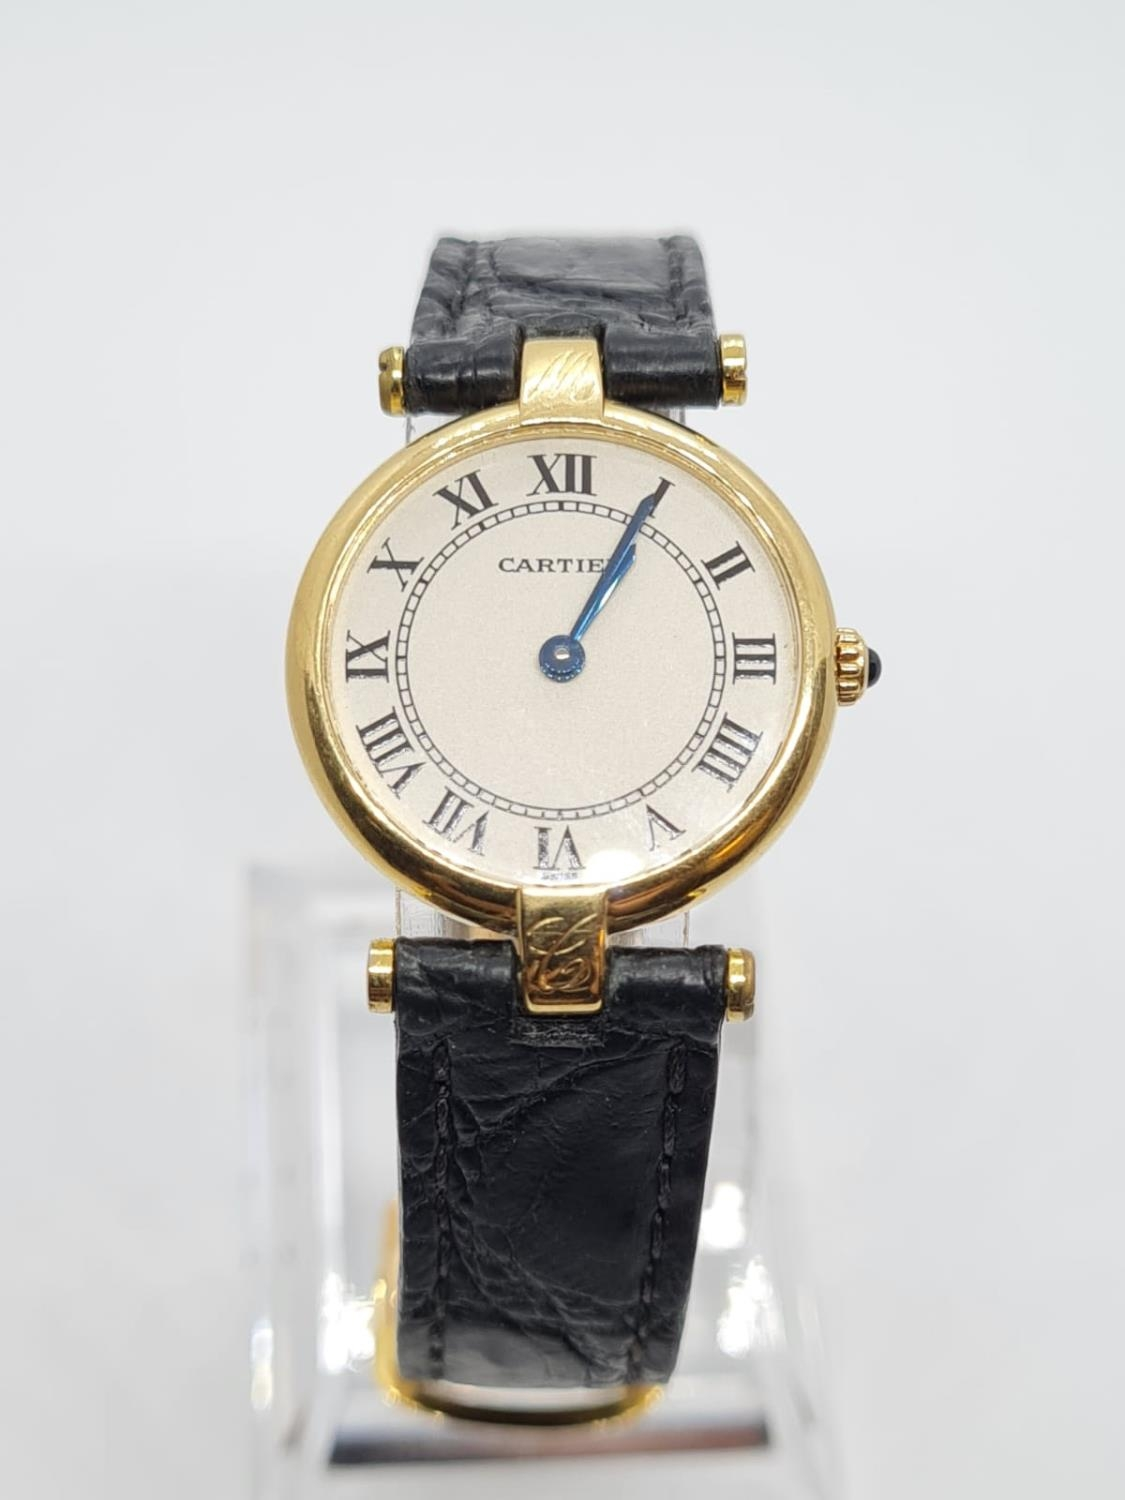 Vintage Cartier 18ct Gold Ladies quartz WATCH with round face and Roman Numerals and original